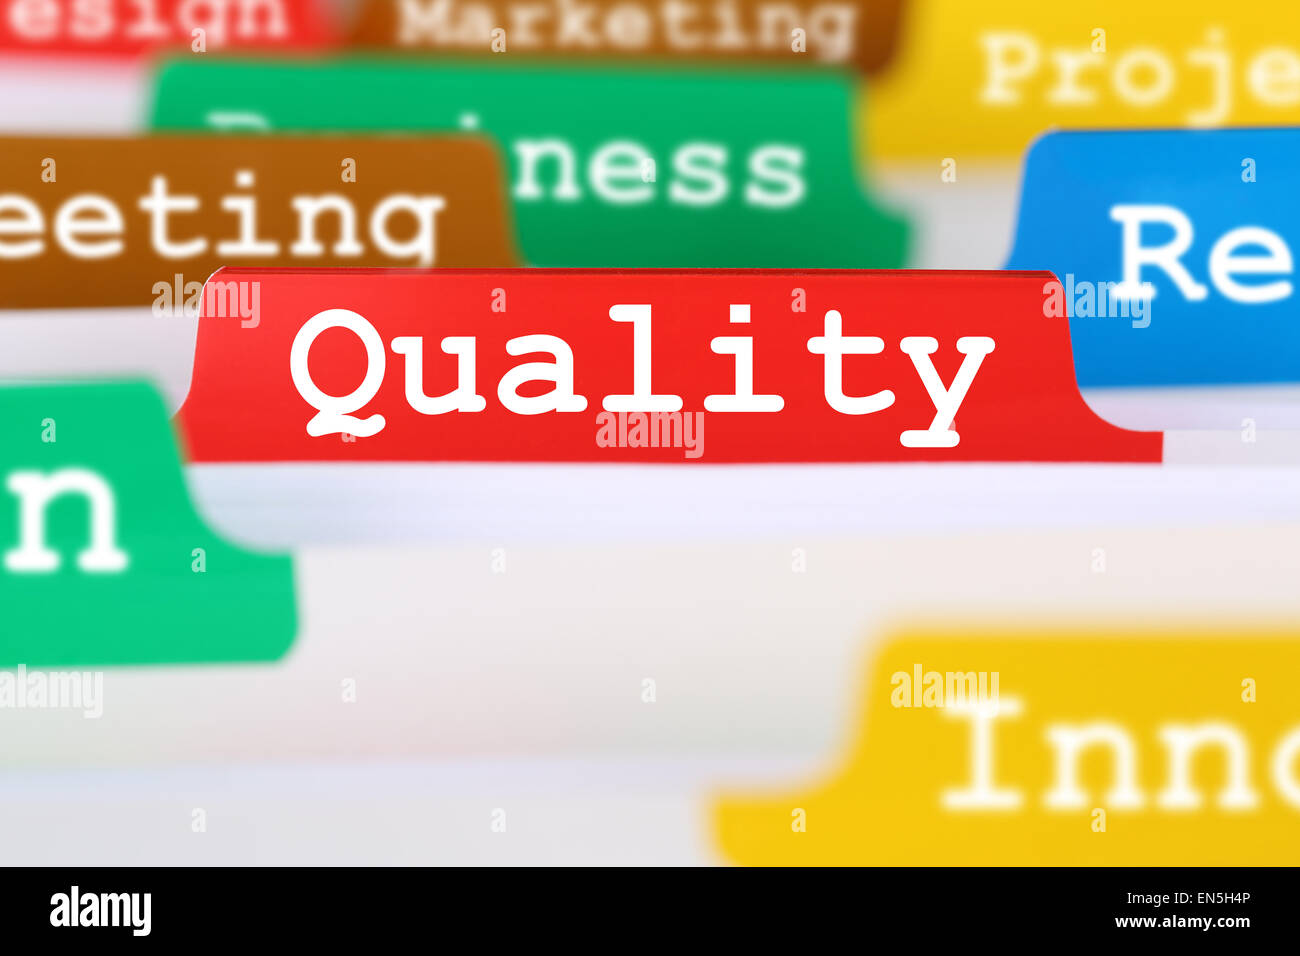 Quality control success and management register in business concept service documents - Stock Image